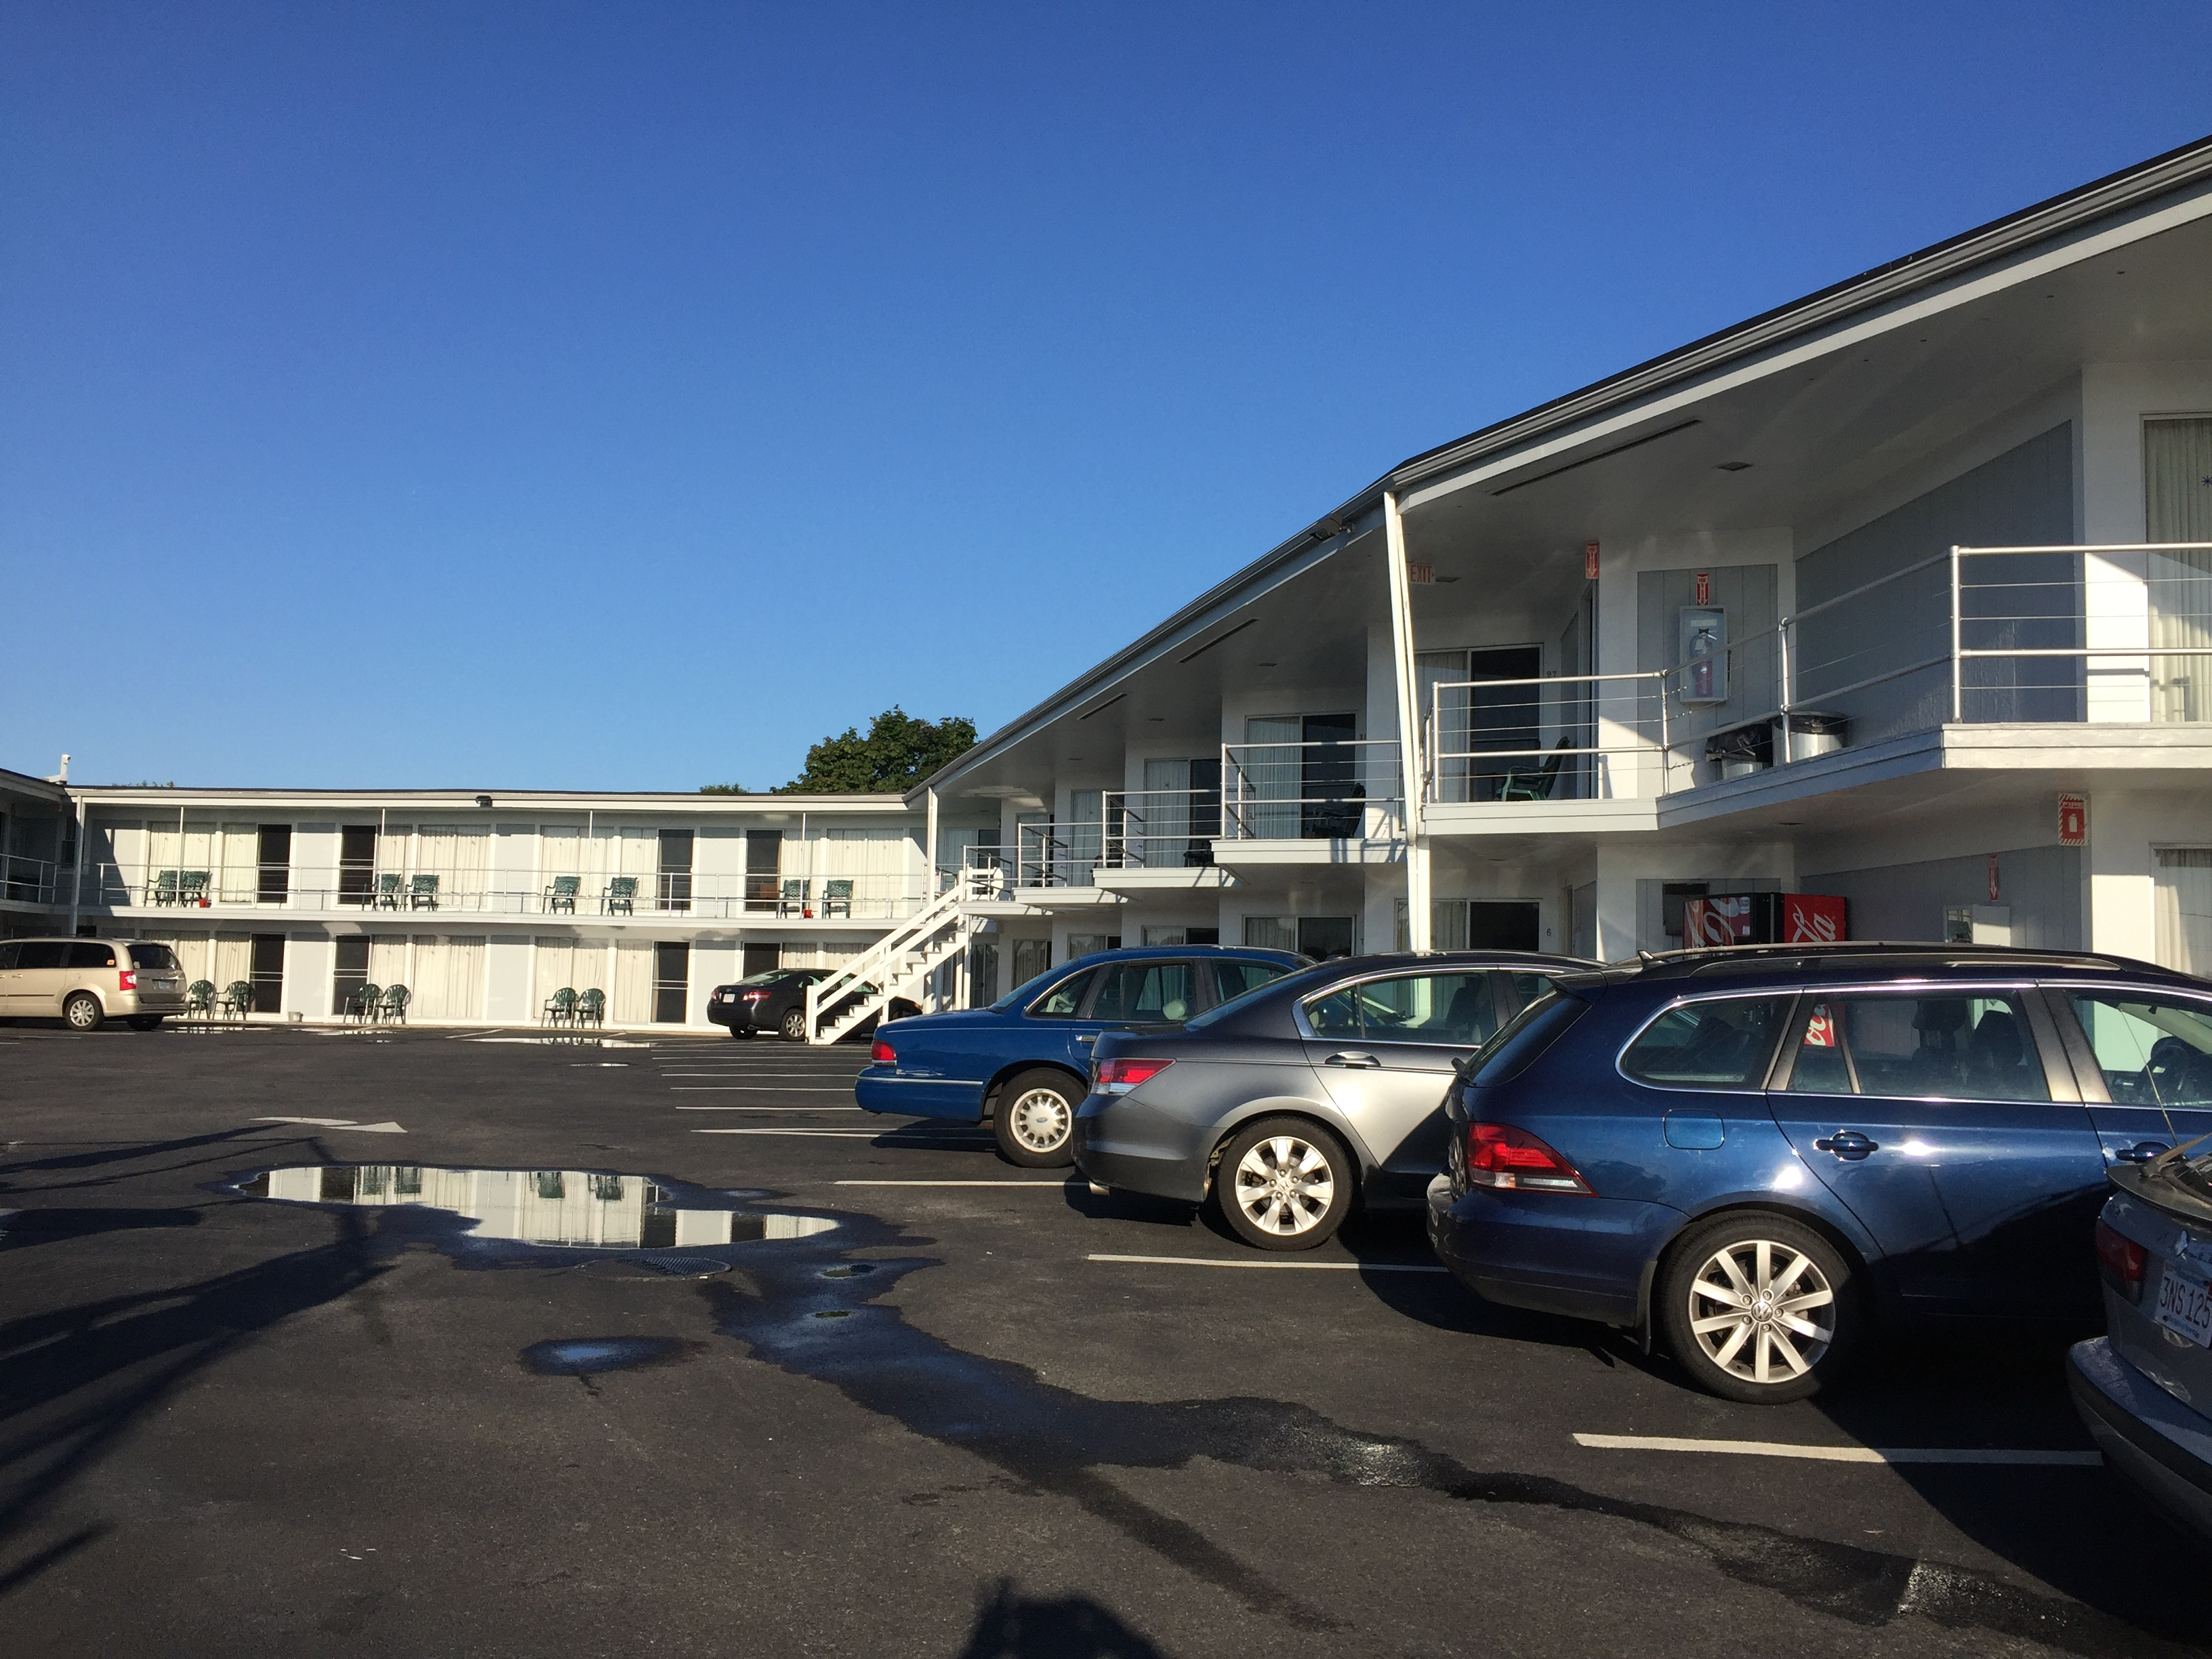 Parking and staying are equally easy at the Hyannis Holiday Motel on Cape Cod, Mass. Photo credit: M. Ciavardini